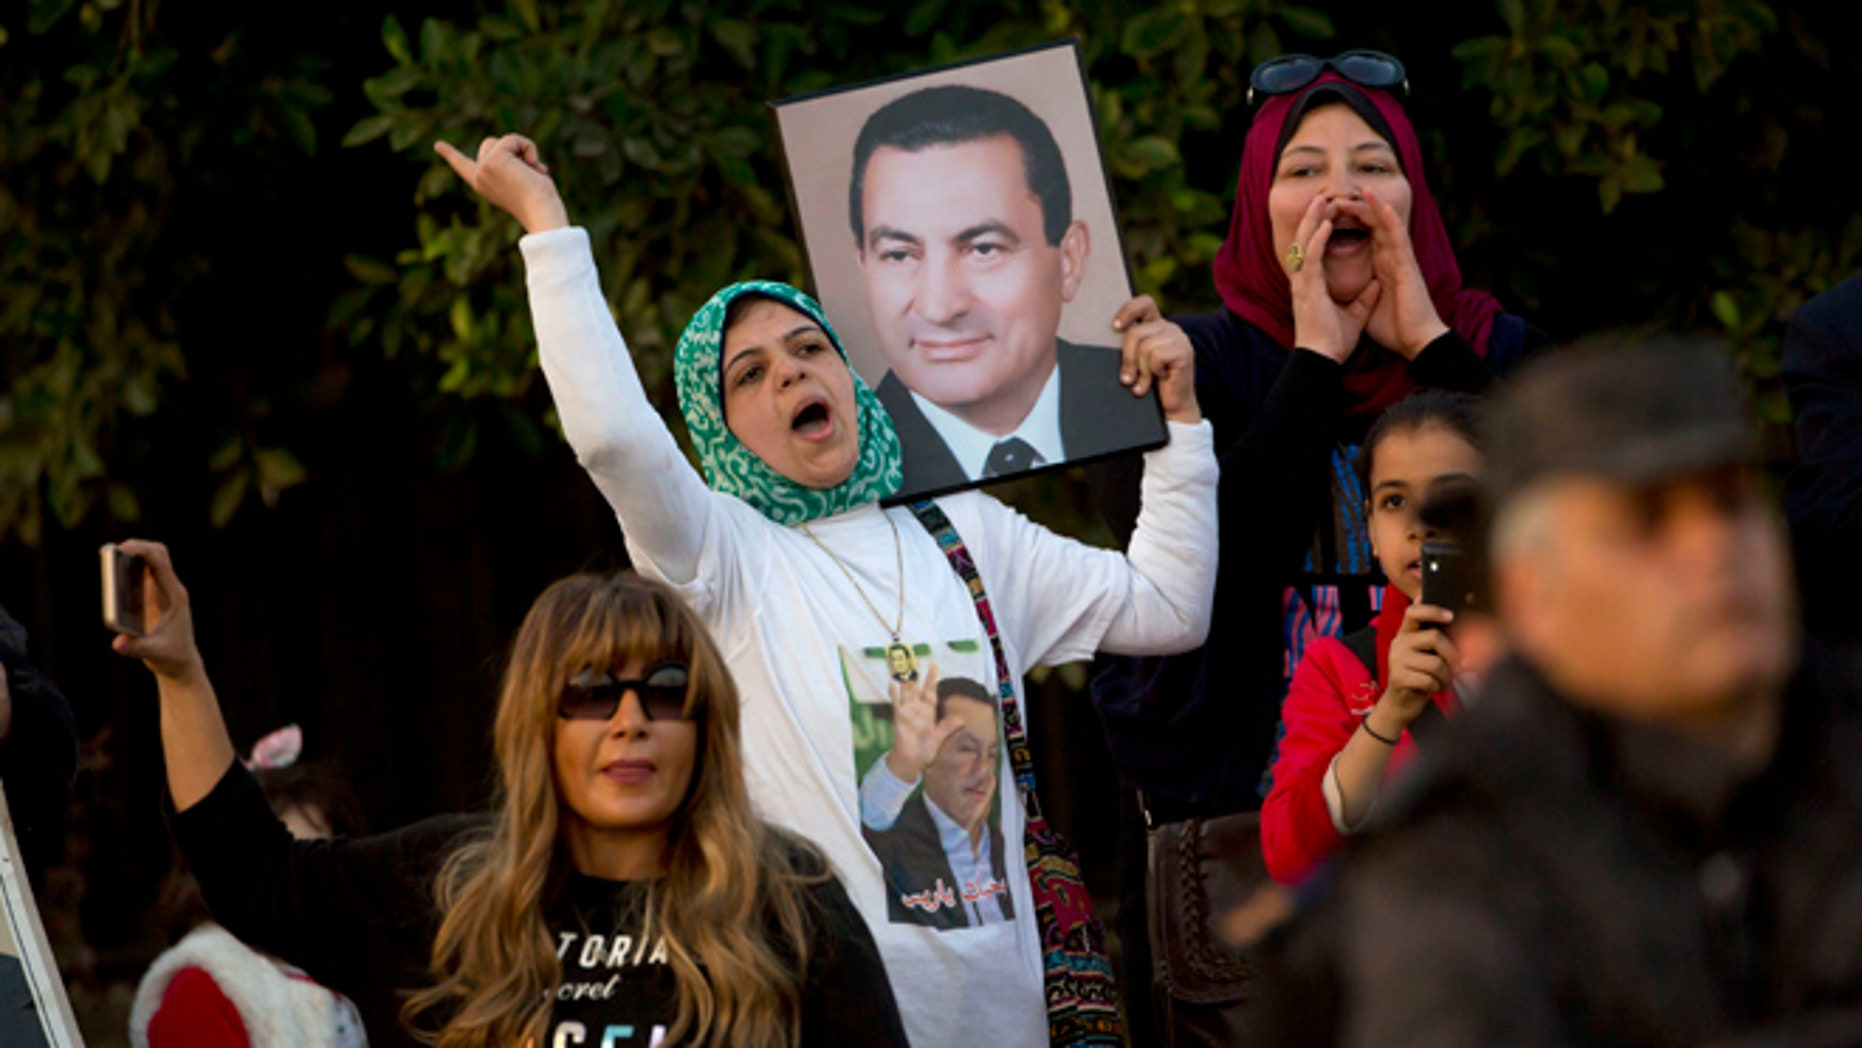 A small number of supporters of ousted former Egyptian President Hosni Mubarak hold posters with his photo, as they celebrate outside Maadi Military Hospital, where he is hospitalized, in Cairo, Egypt, Thursday, March 2, 2017.